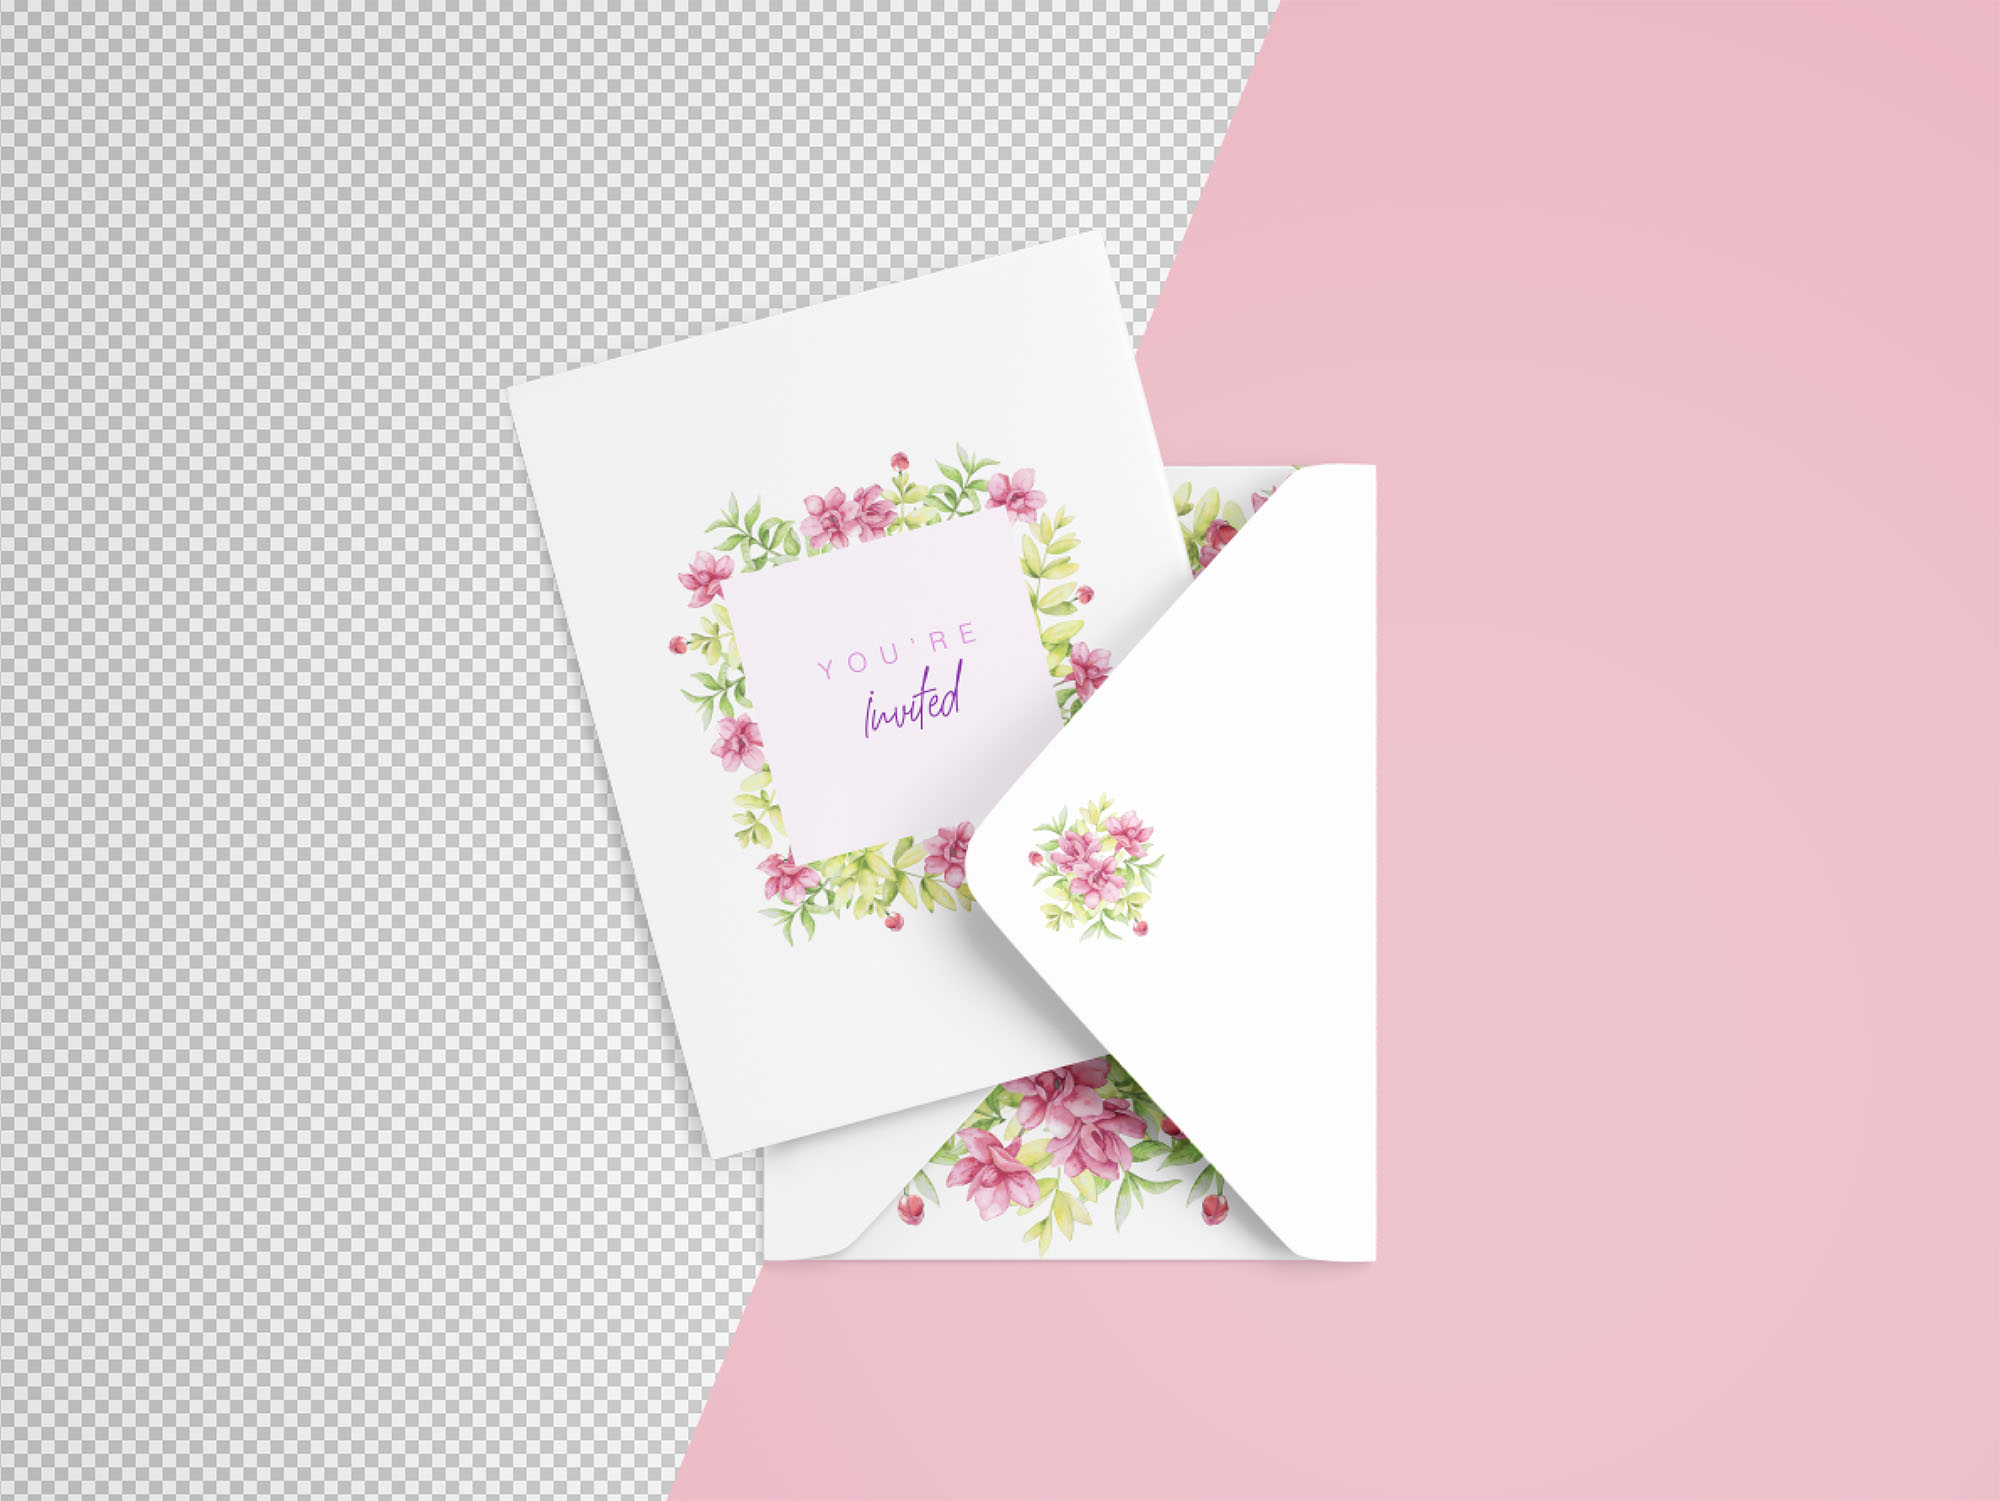 Invitation Card Mockup - Transparent